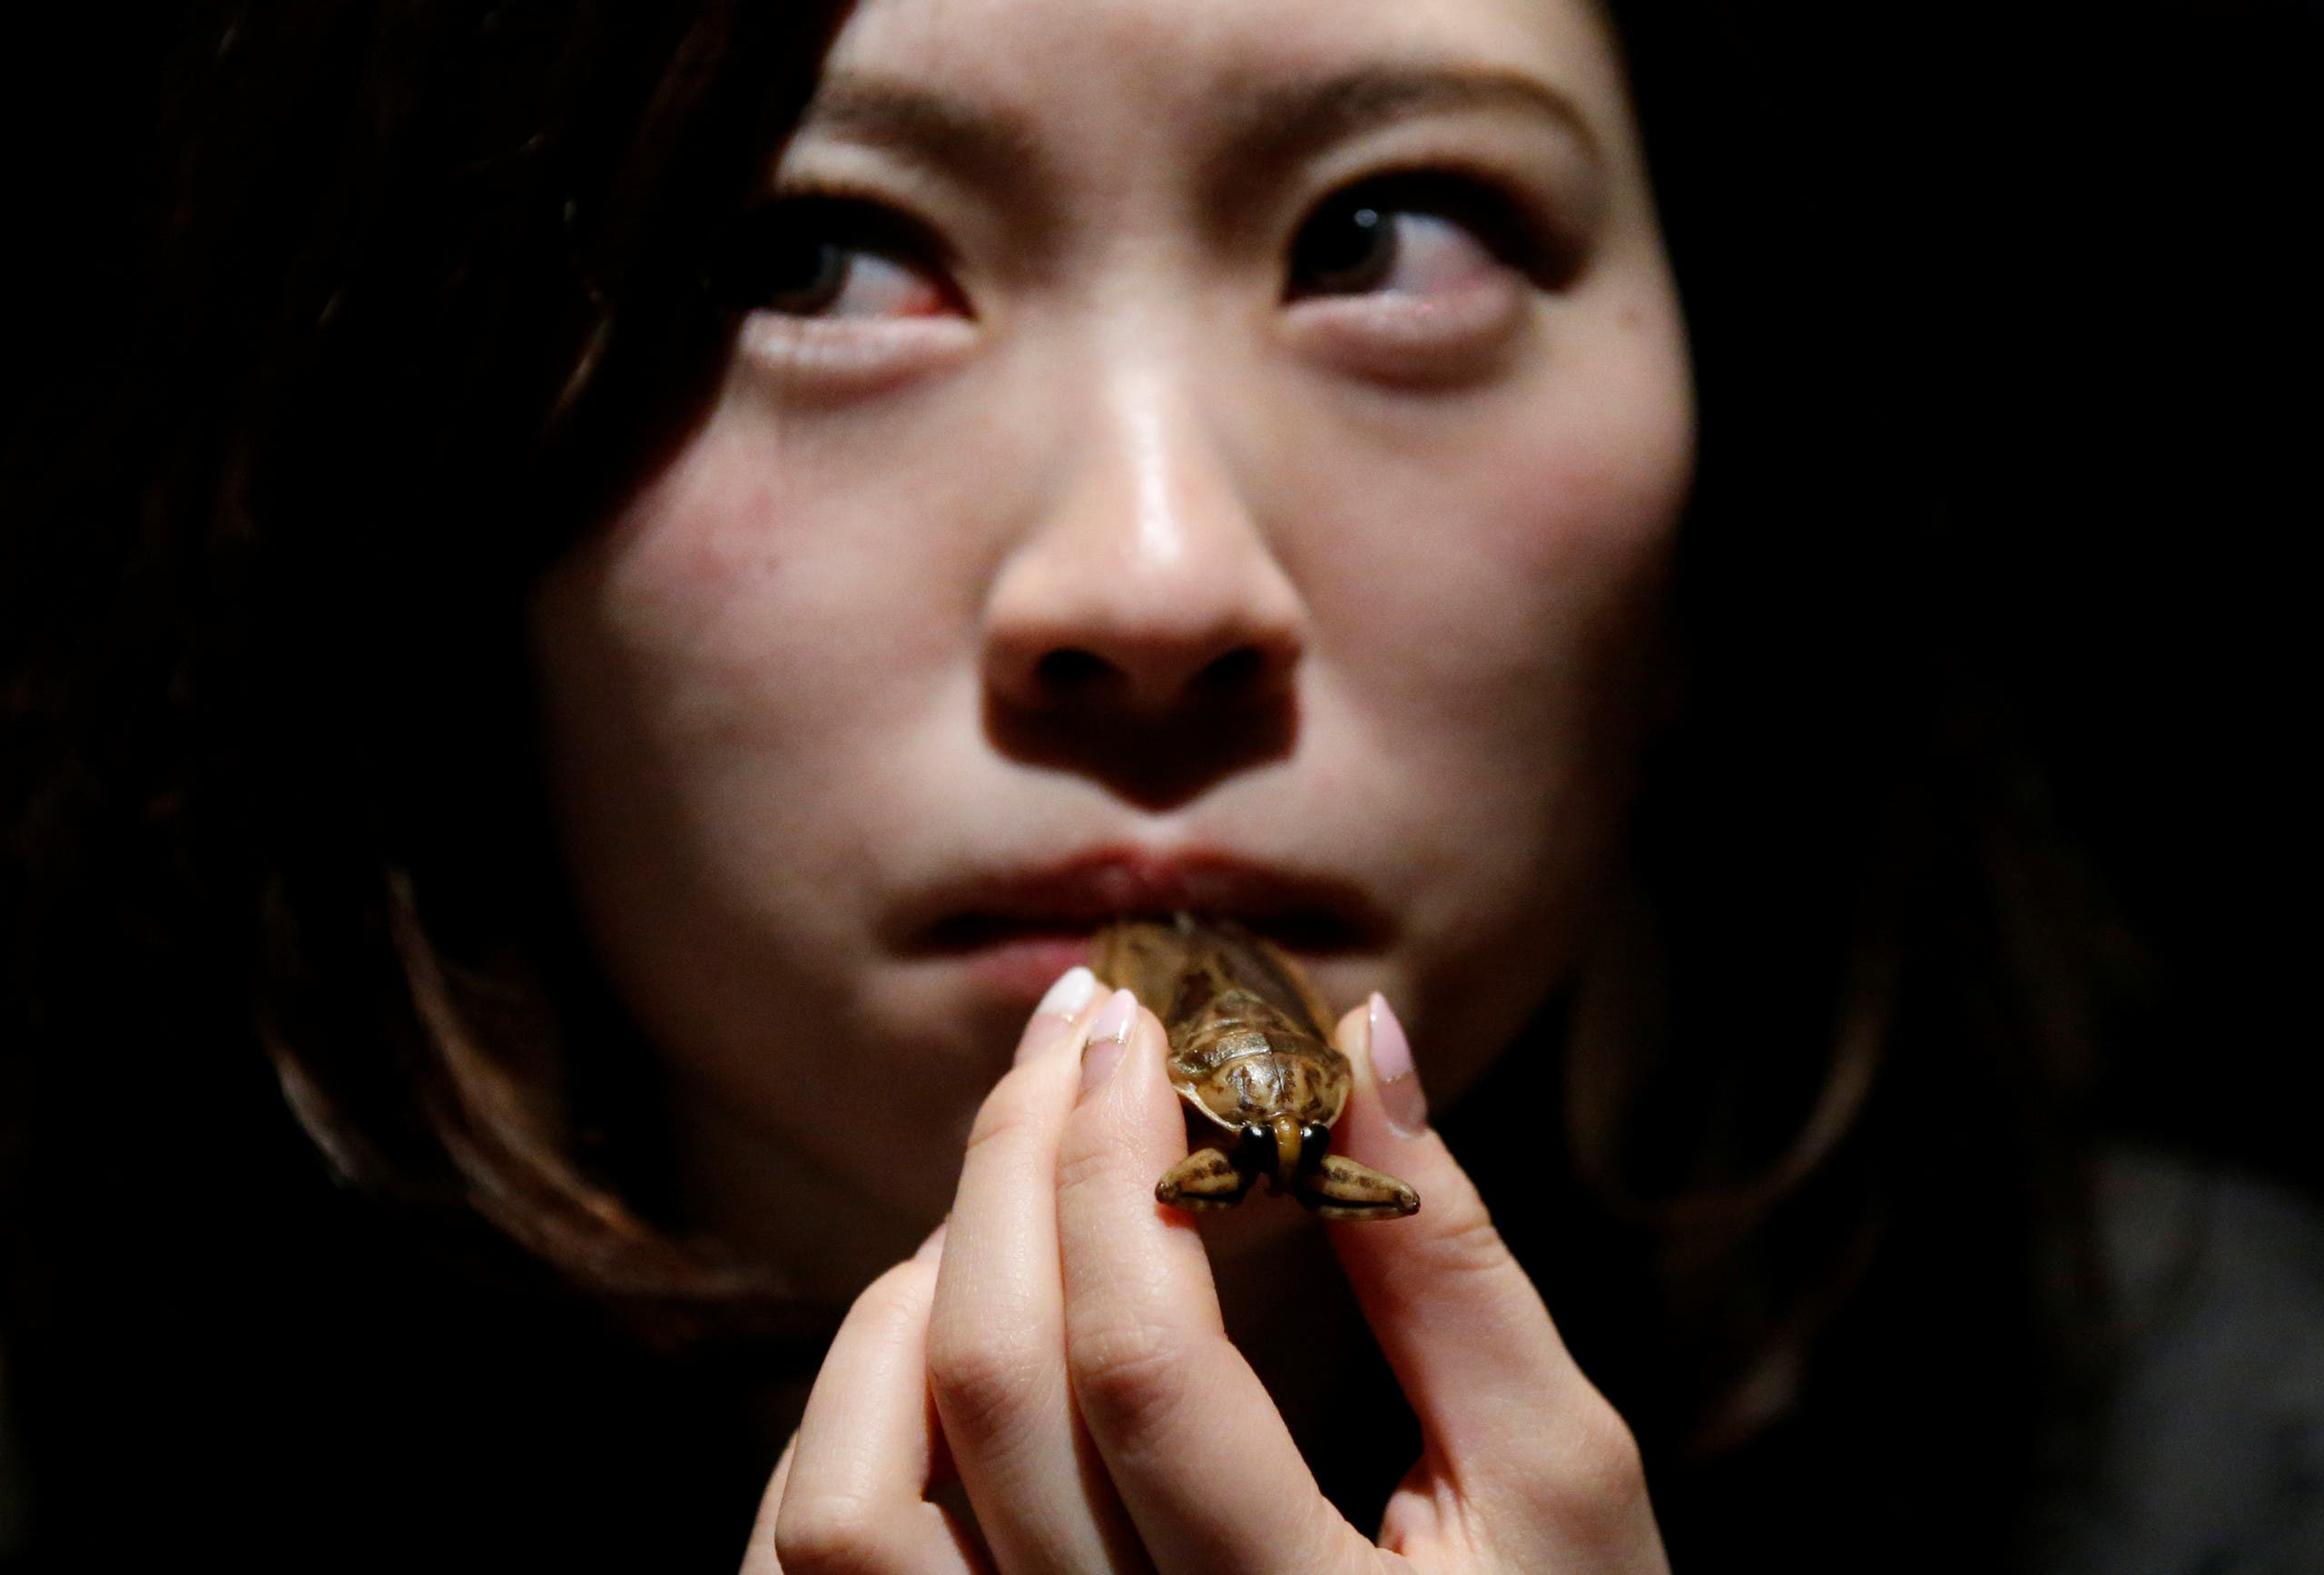 A woman tries to eat a water bug at a bar in downtown Tokyo, Japan, February 12, 2017. Picture taken February 12, 2017. REUTERS/Toru Hanai